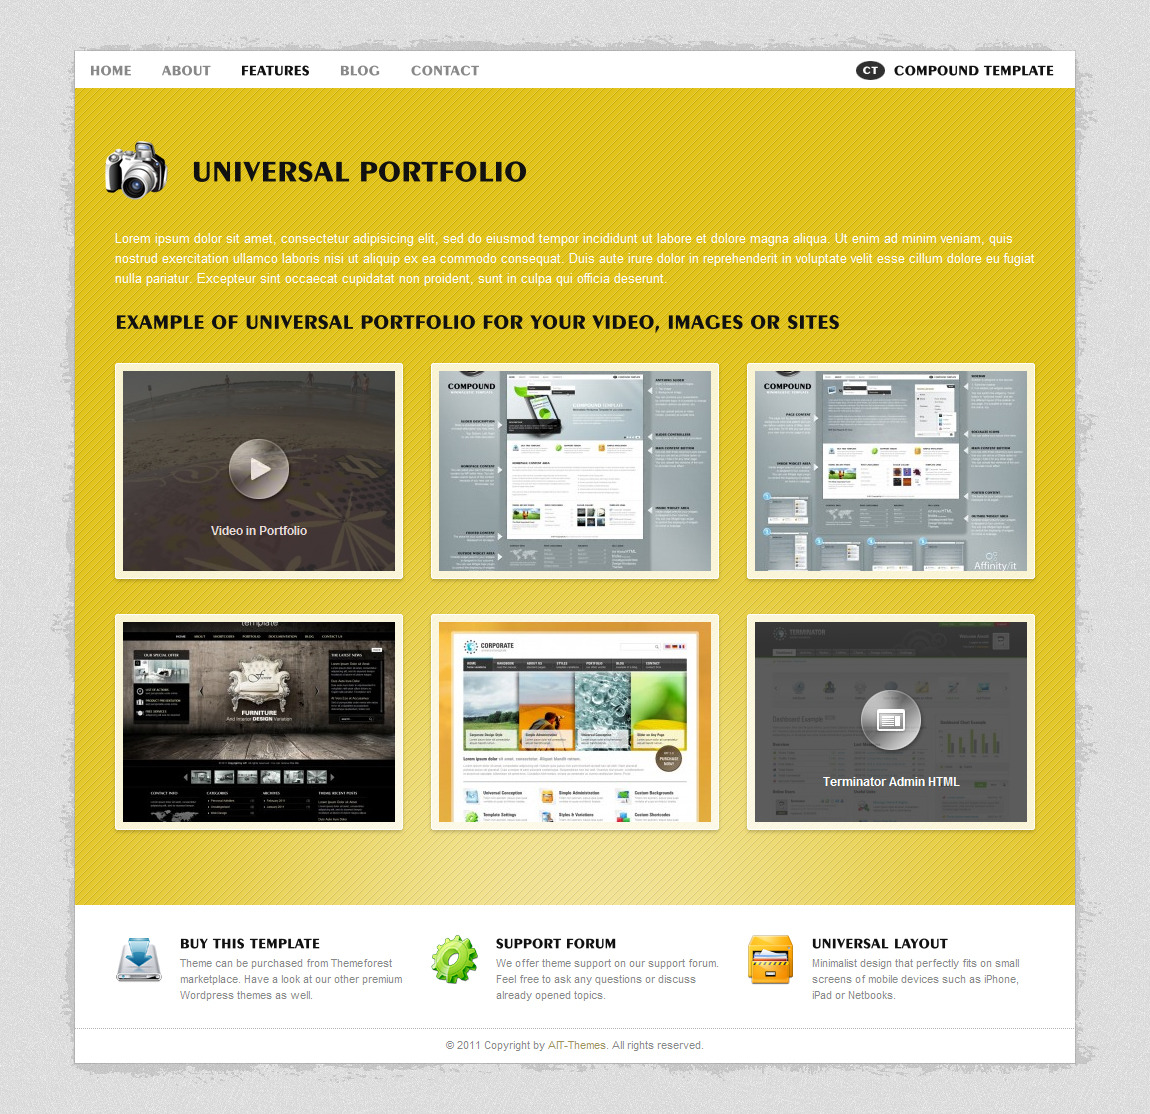 Compound - Minimalist Business & Portfolio Theme